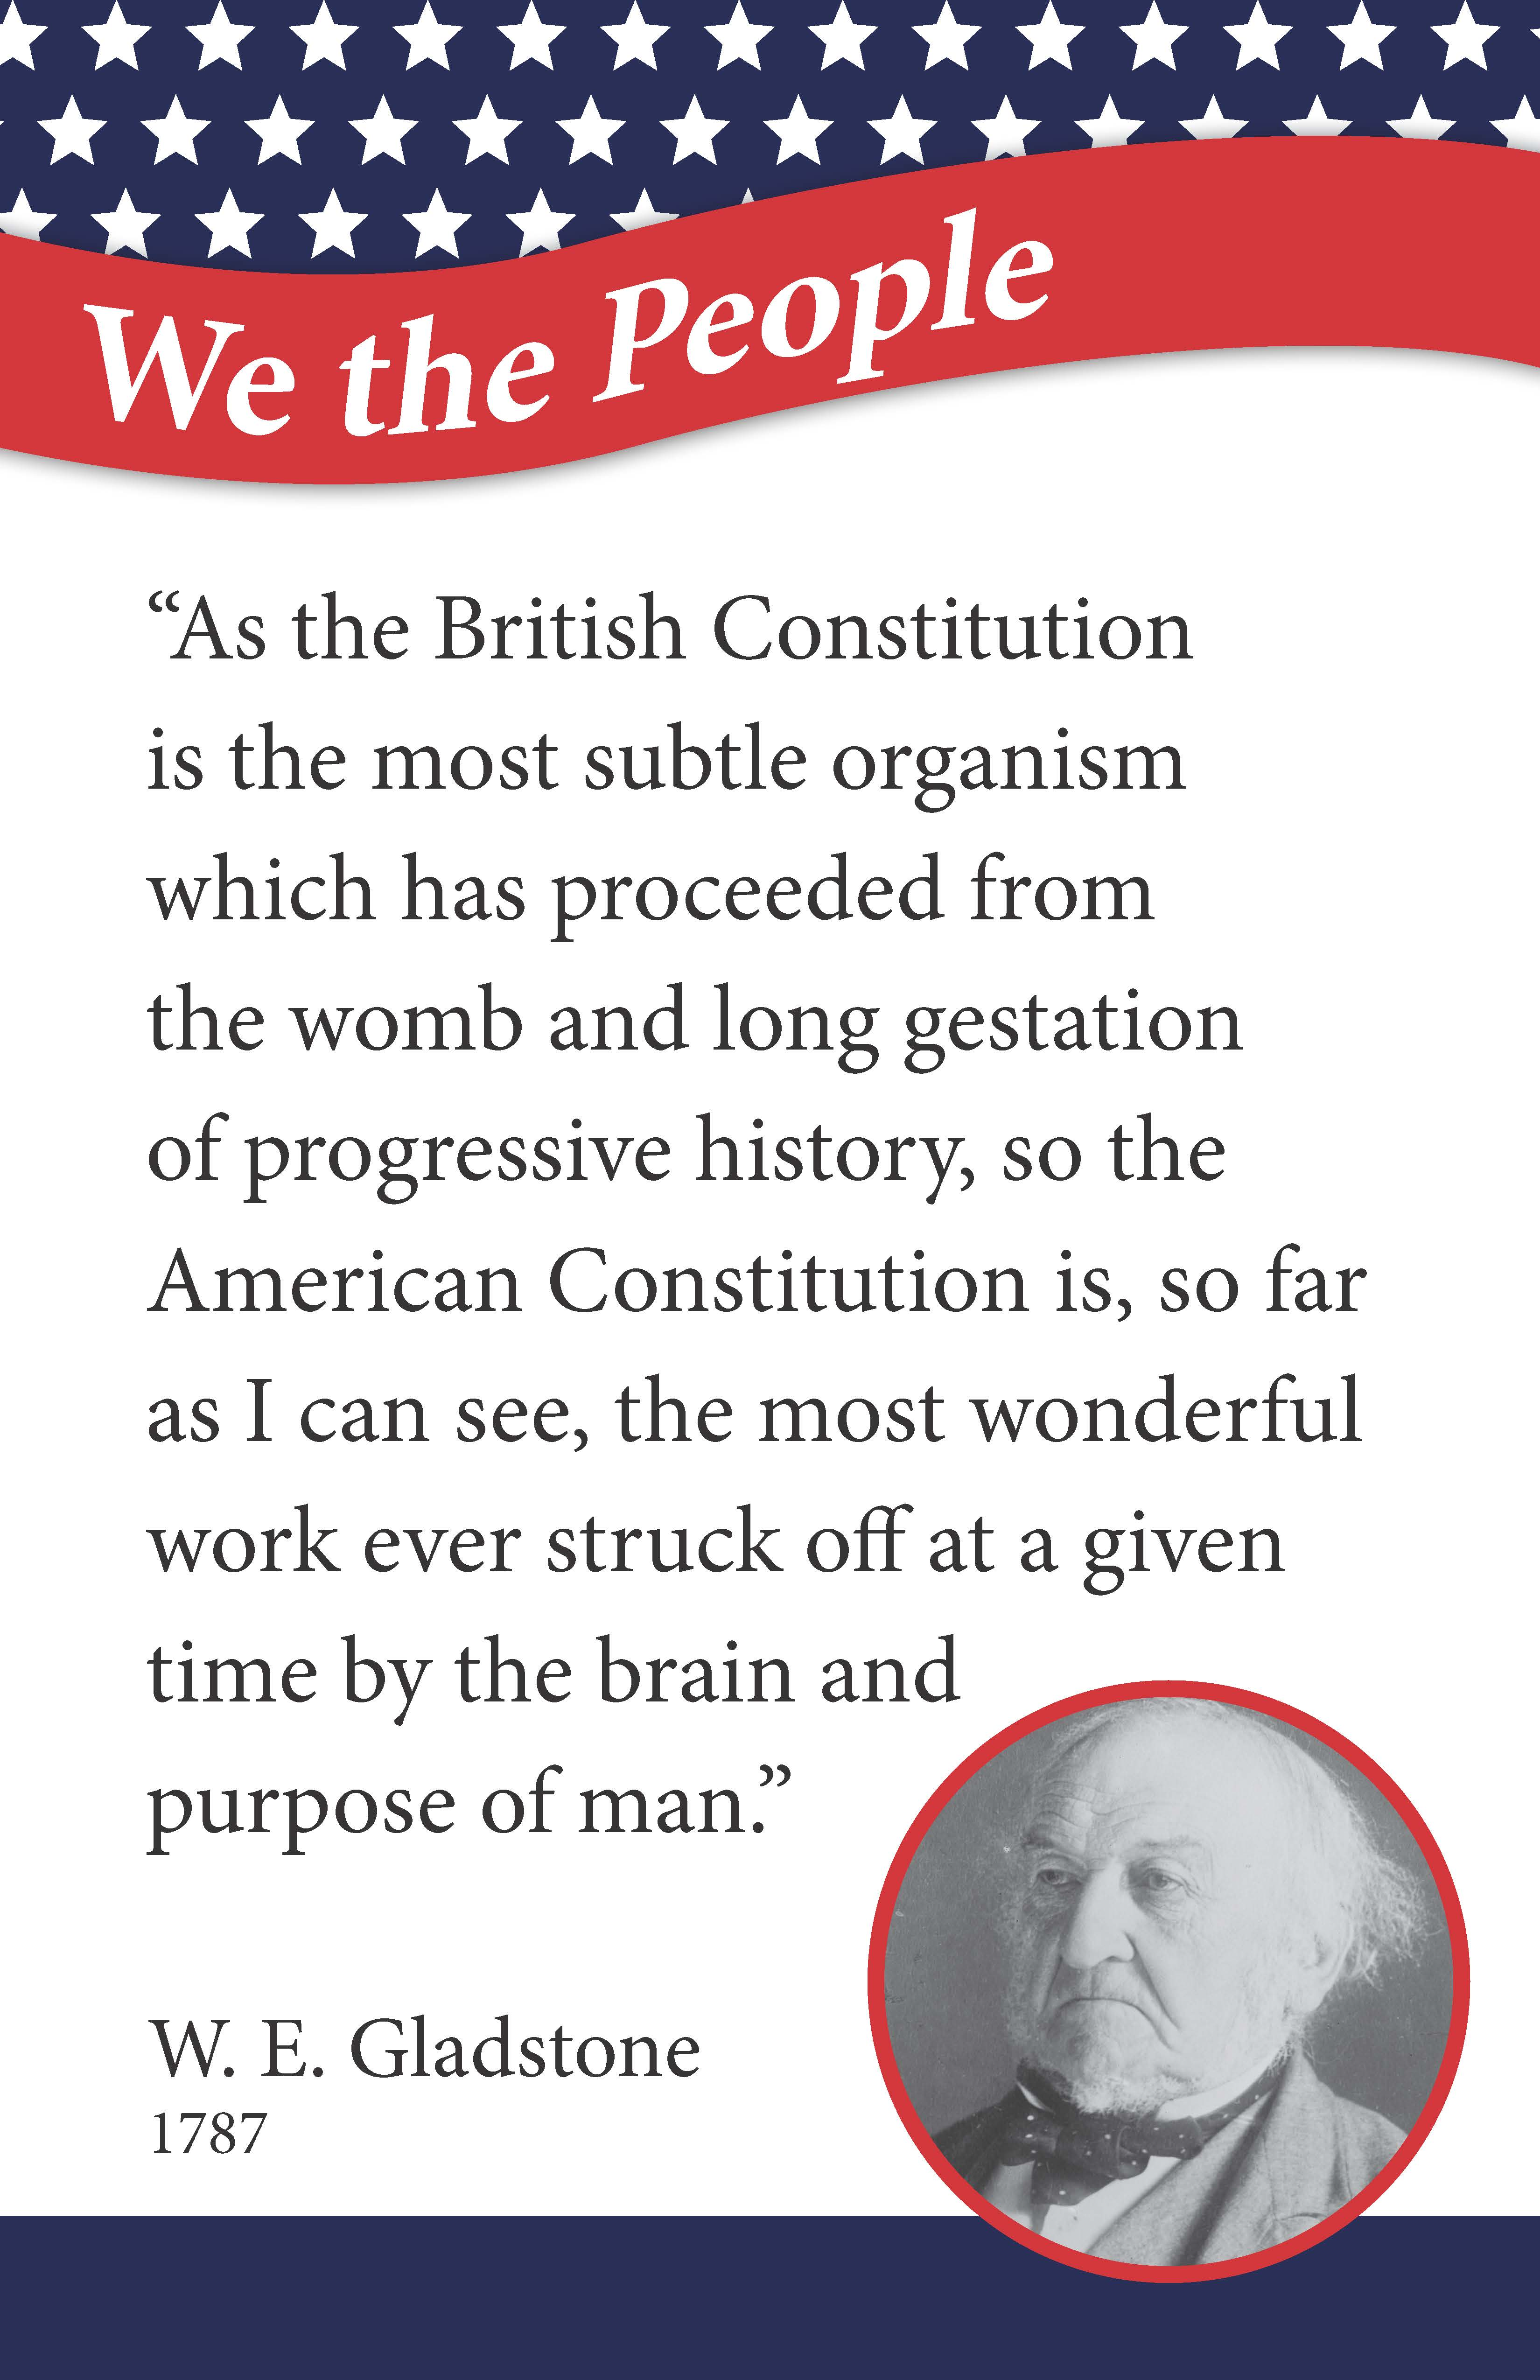 constitution_day_posters_11x17_Page_3